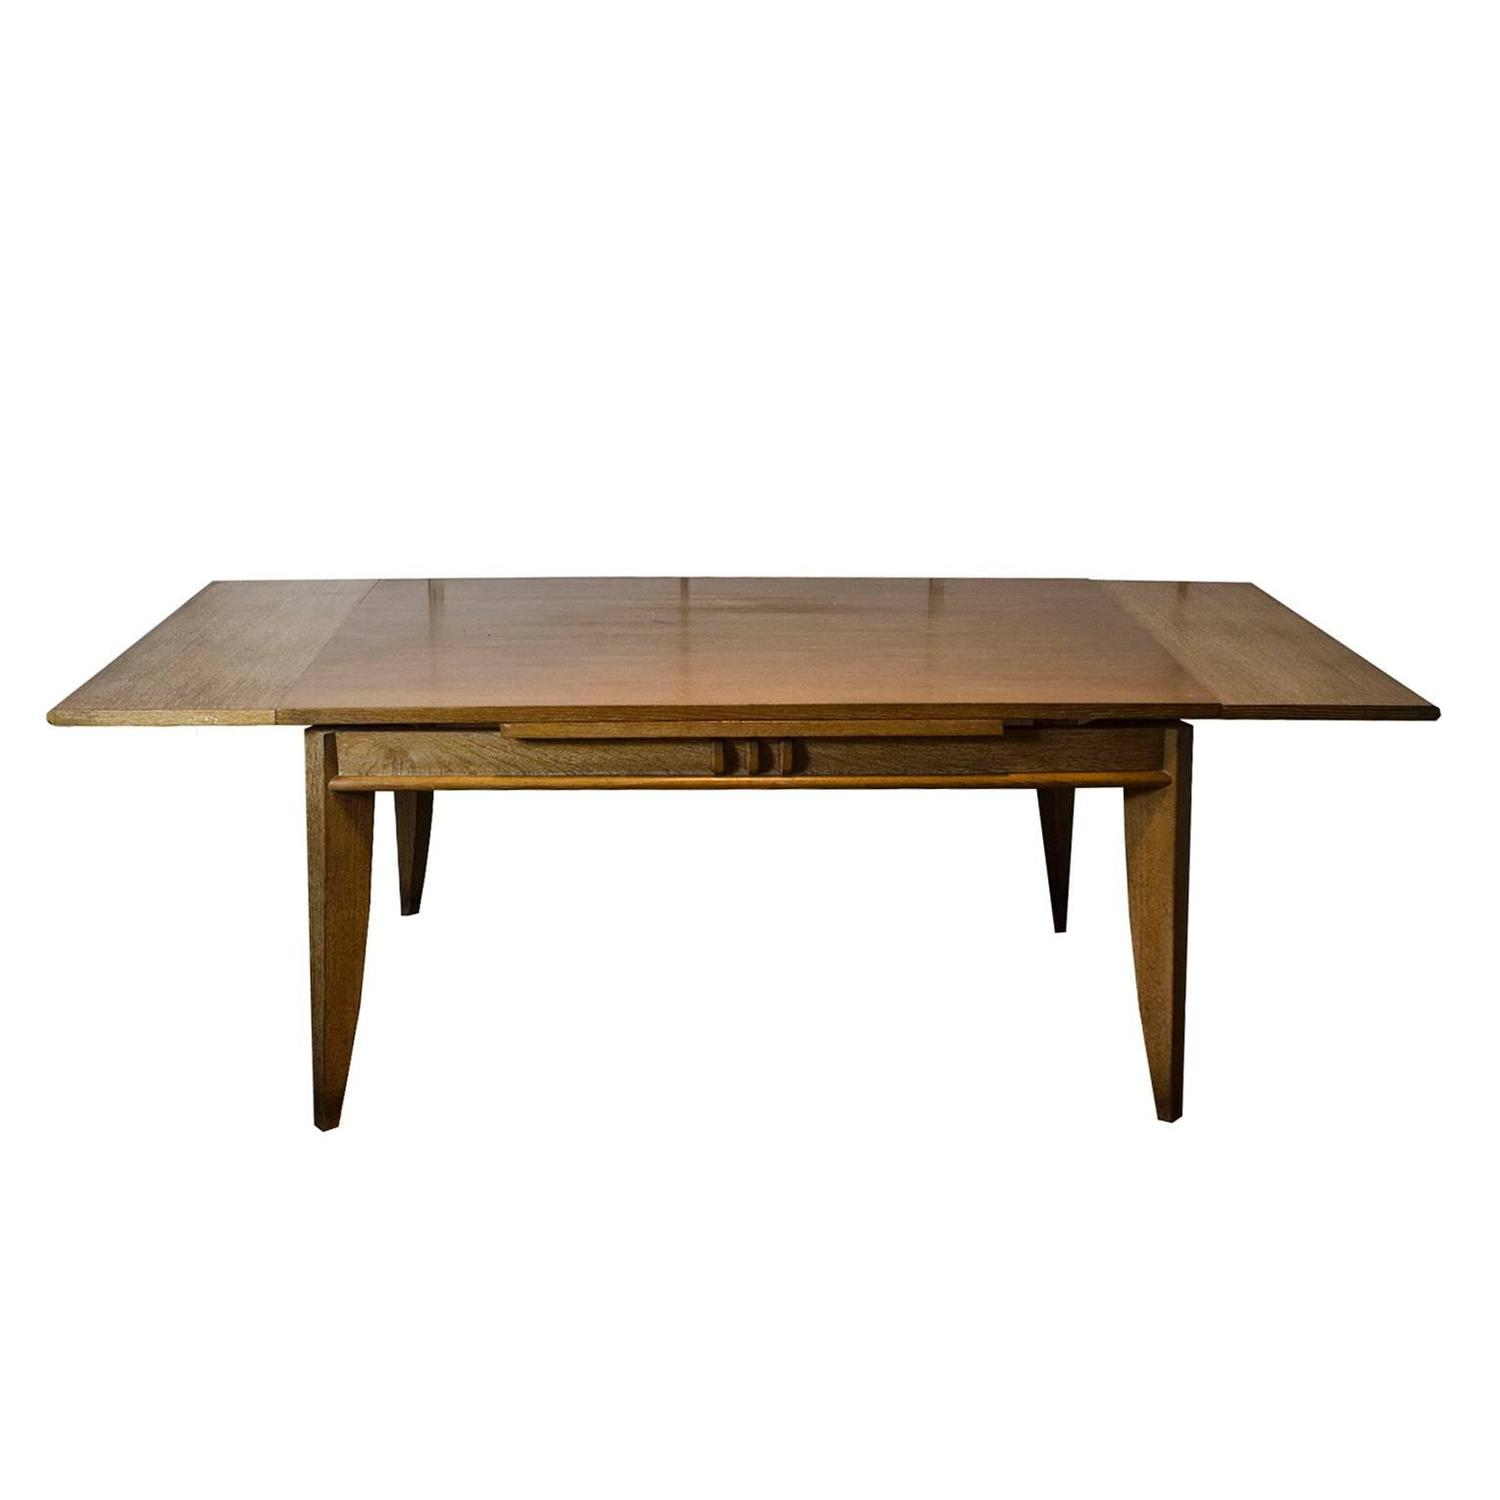 20th century art deco table at 1stdibs - Art deco dining room table ...